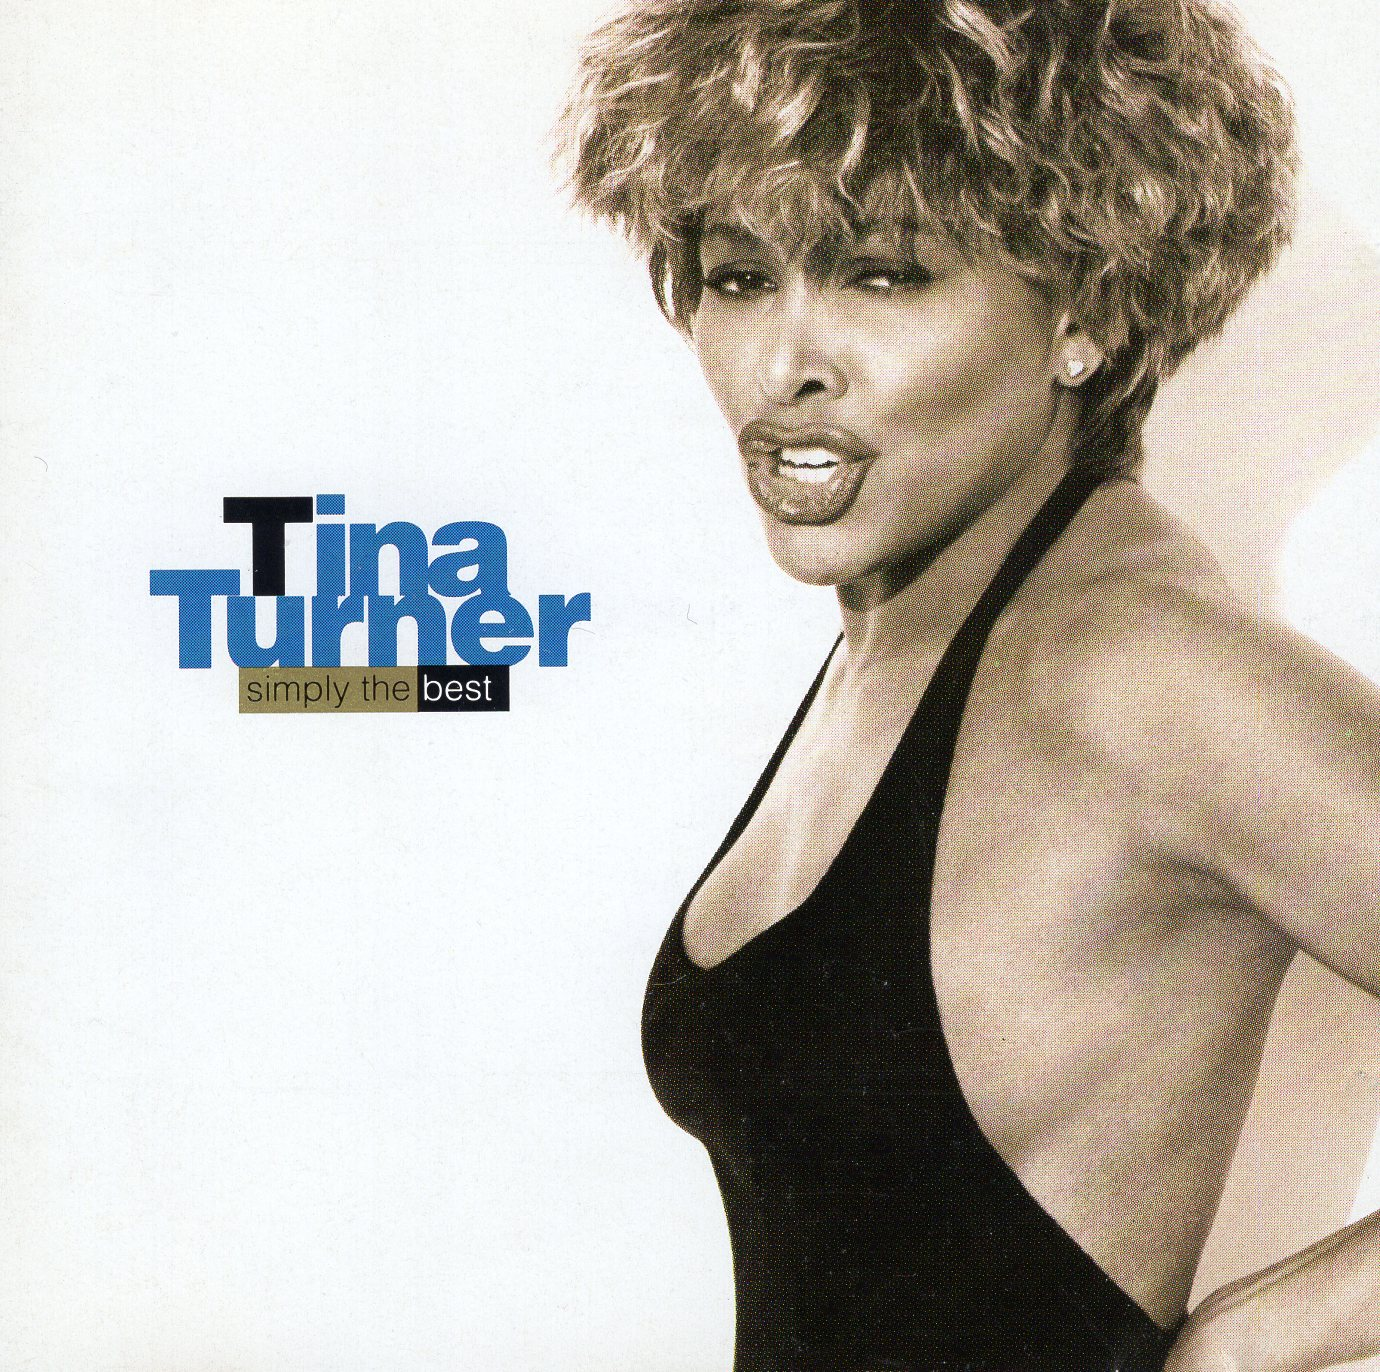 """Tina Turner: Simply the Best"" Tina Turner"